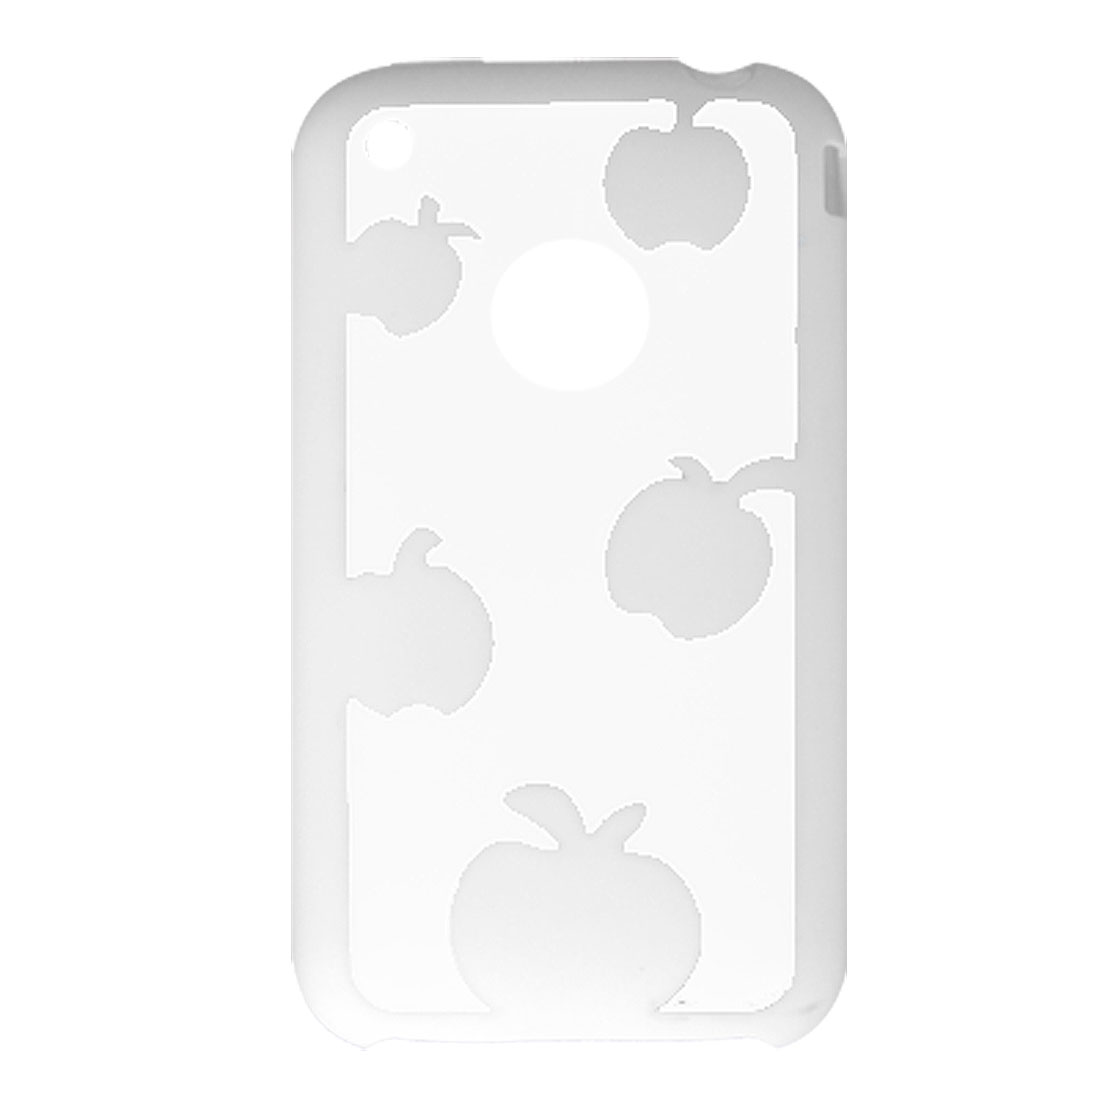 Clear White Apple Pattern Plastic Cover for iPhone 3G